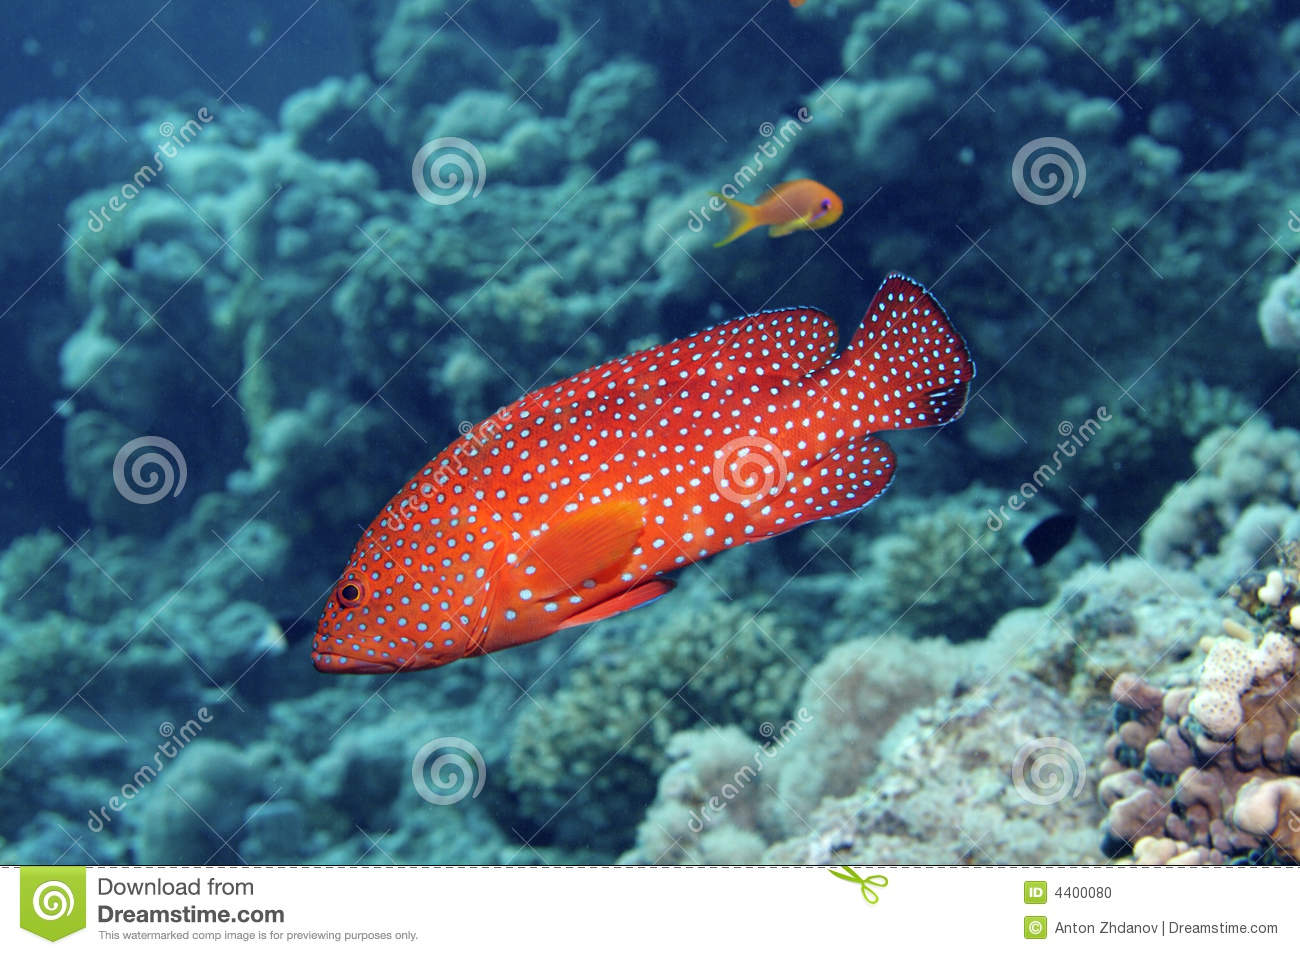 Red Spotted Fish stock photo. Image of animal, color, orange - 4400080